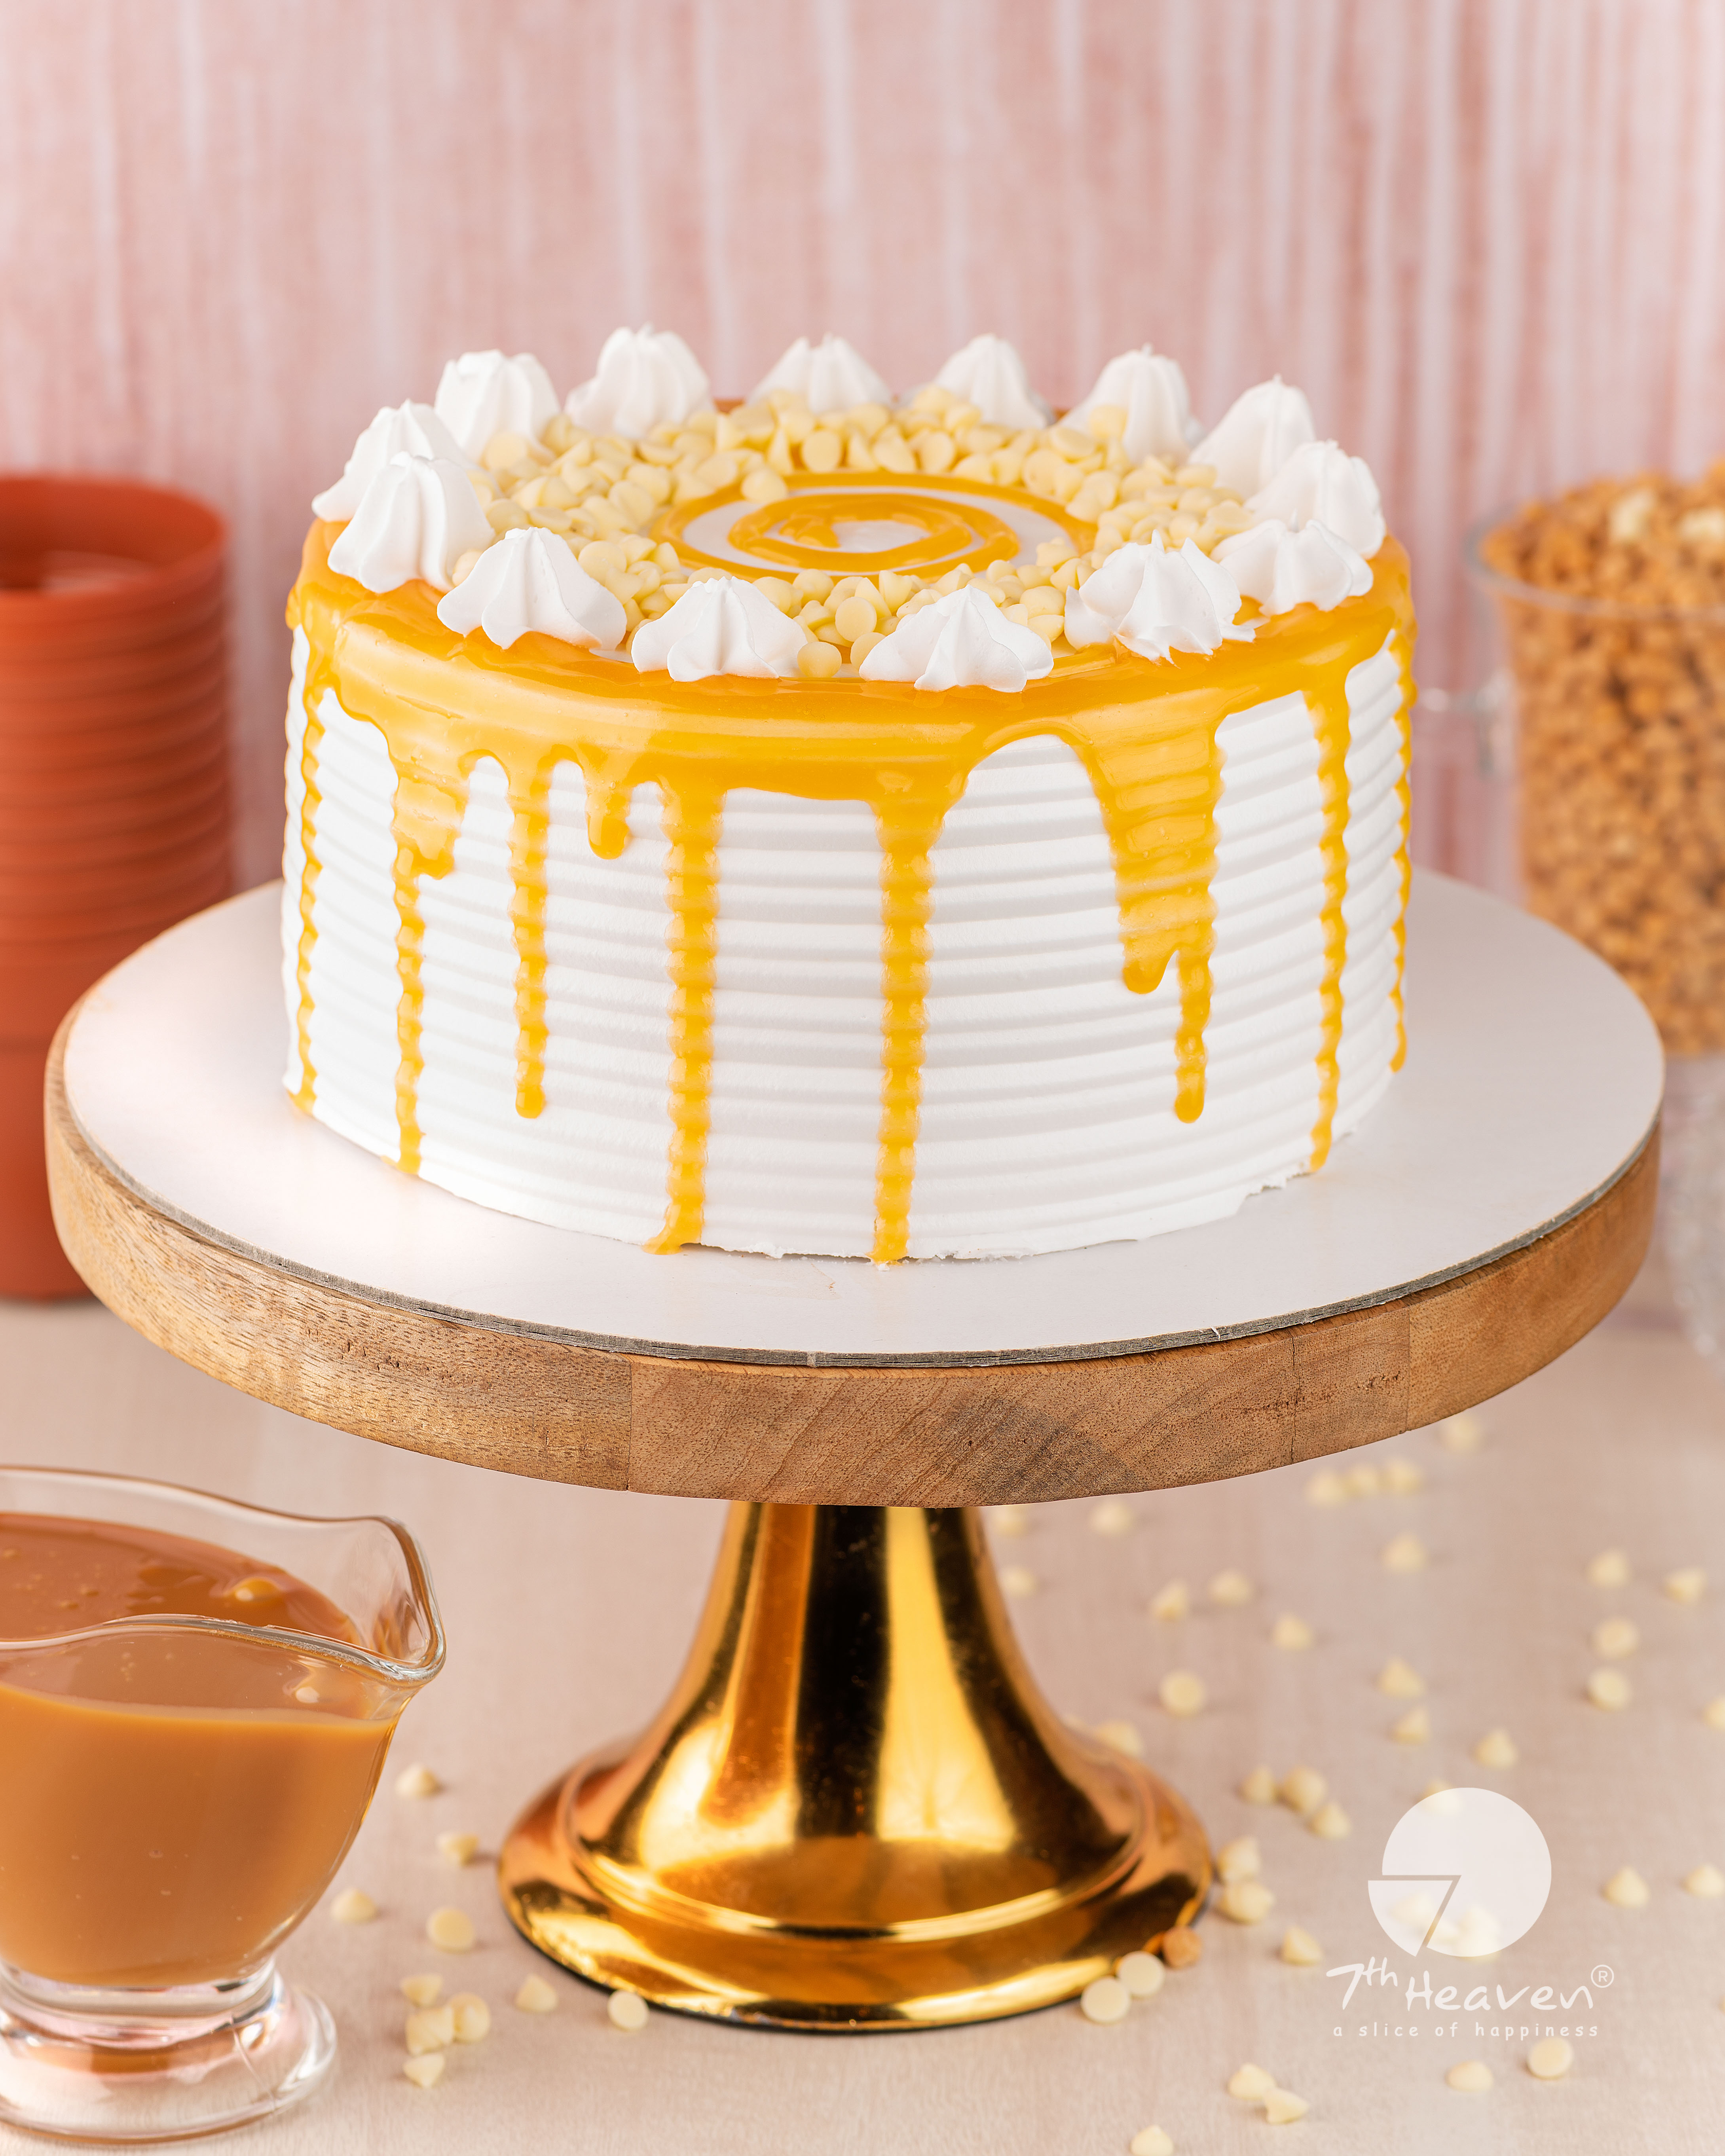 Caramel and white choco chips cake